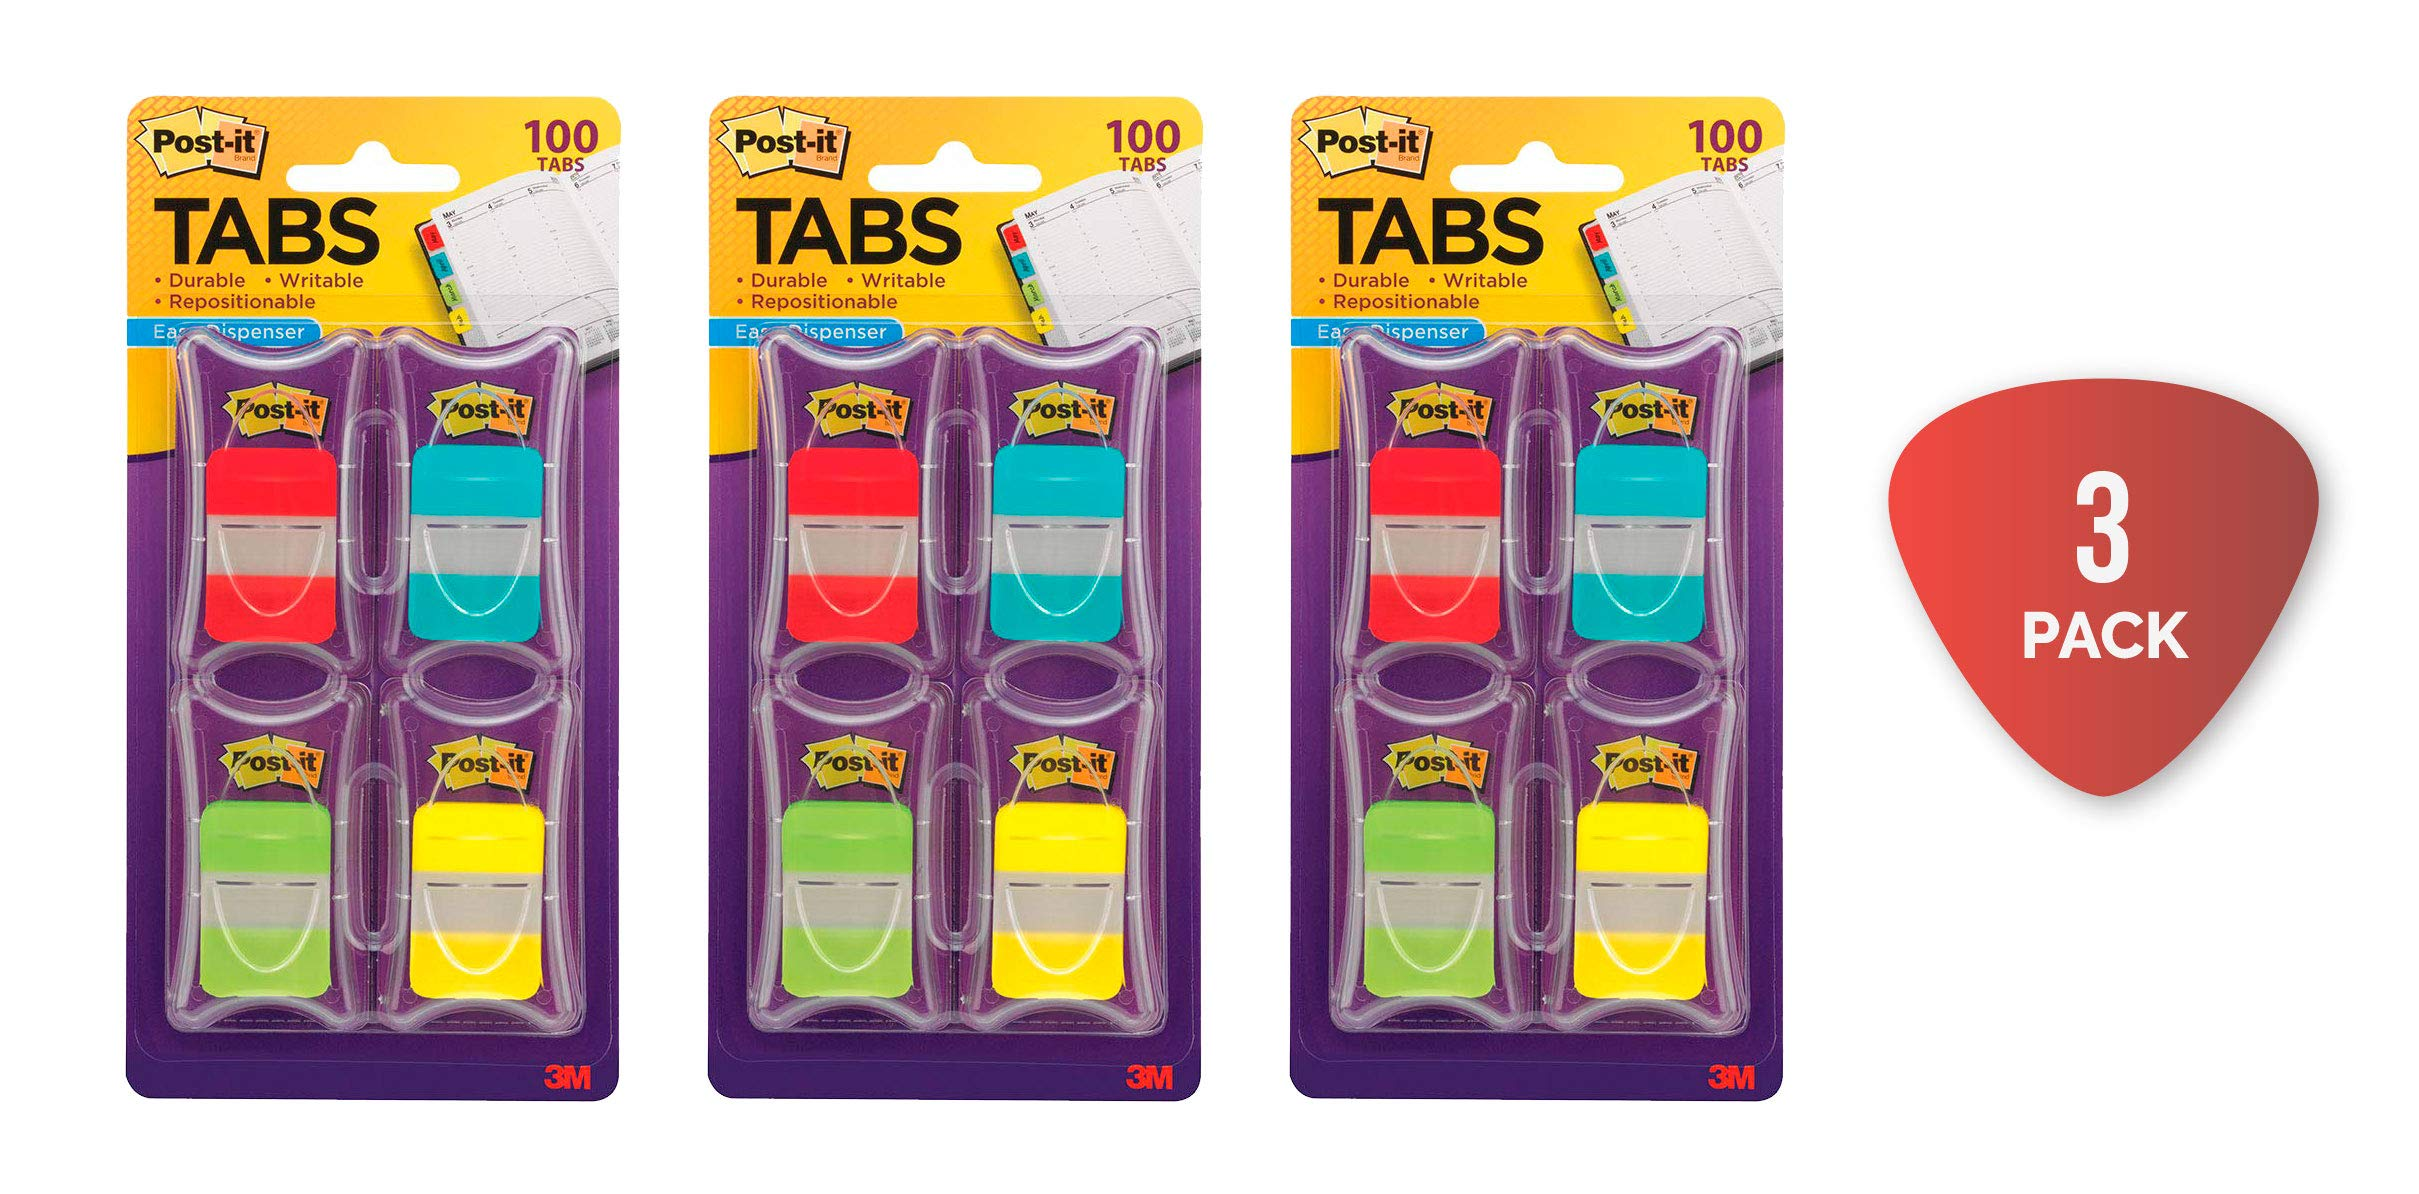 Post-it Tabs, 1 in. Solid, Asst Colors, Durable, Writable, Repositionable, Sticks Securely, Removes Cleanly, 25/Color, 25/Dispenser, 4 Dispenser/Pack (686-RALY) Pack of 3 by Post-it